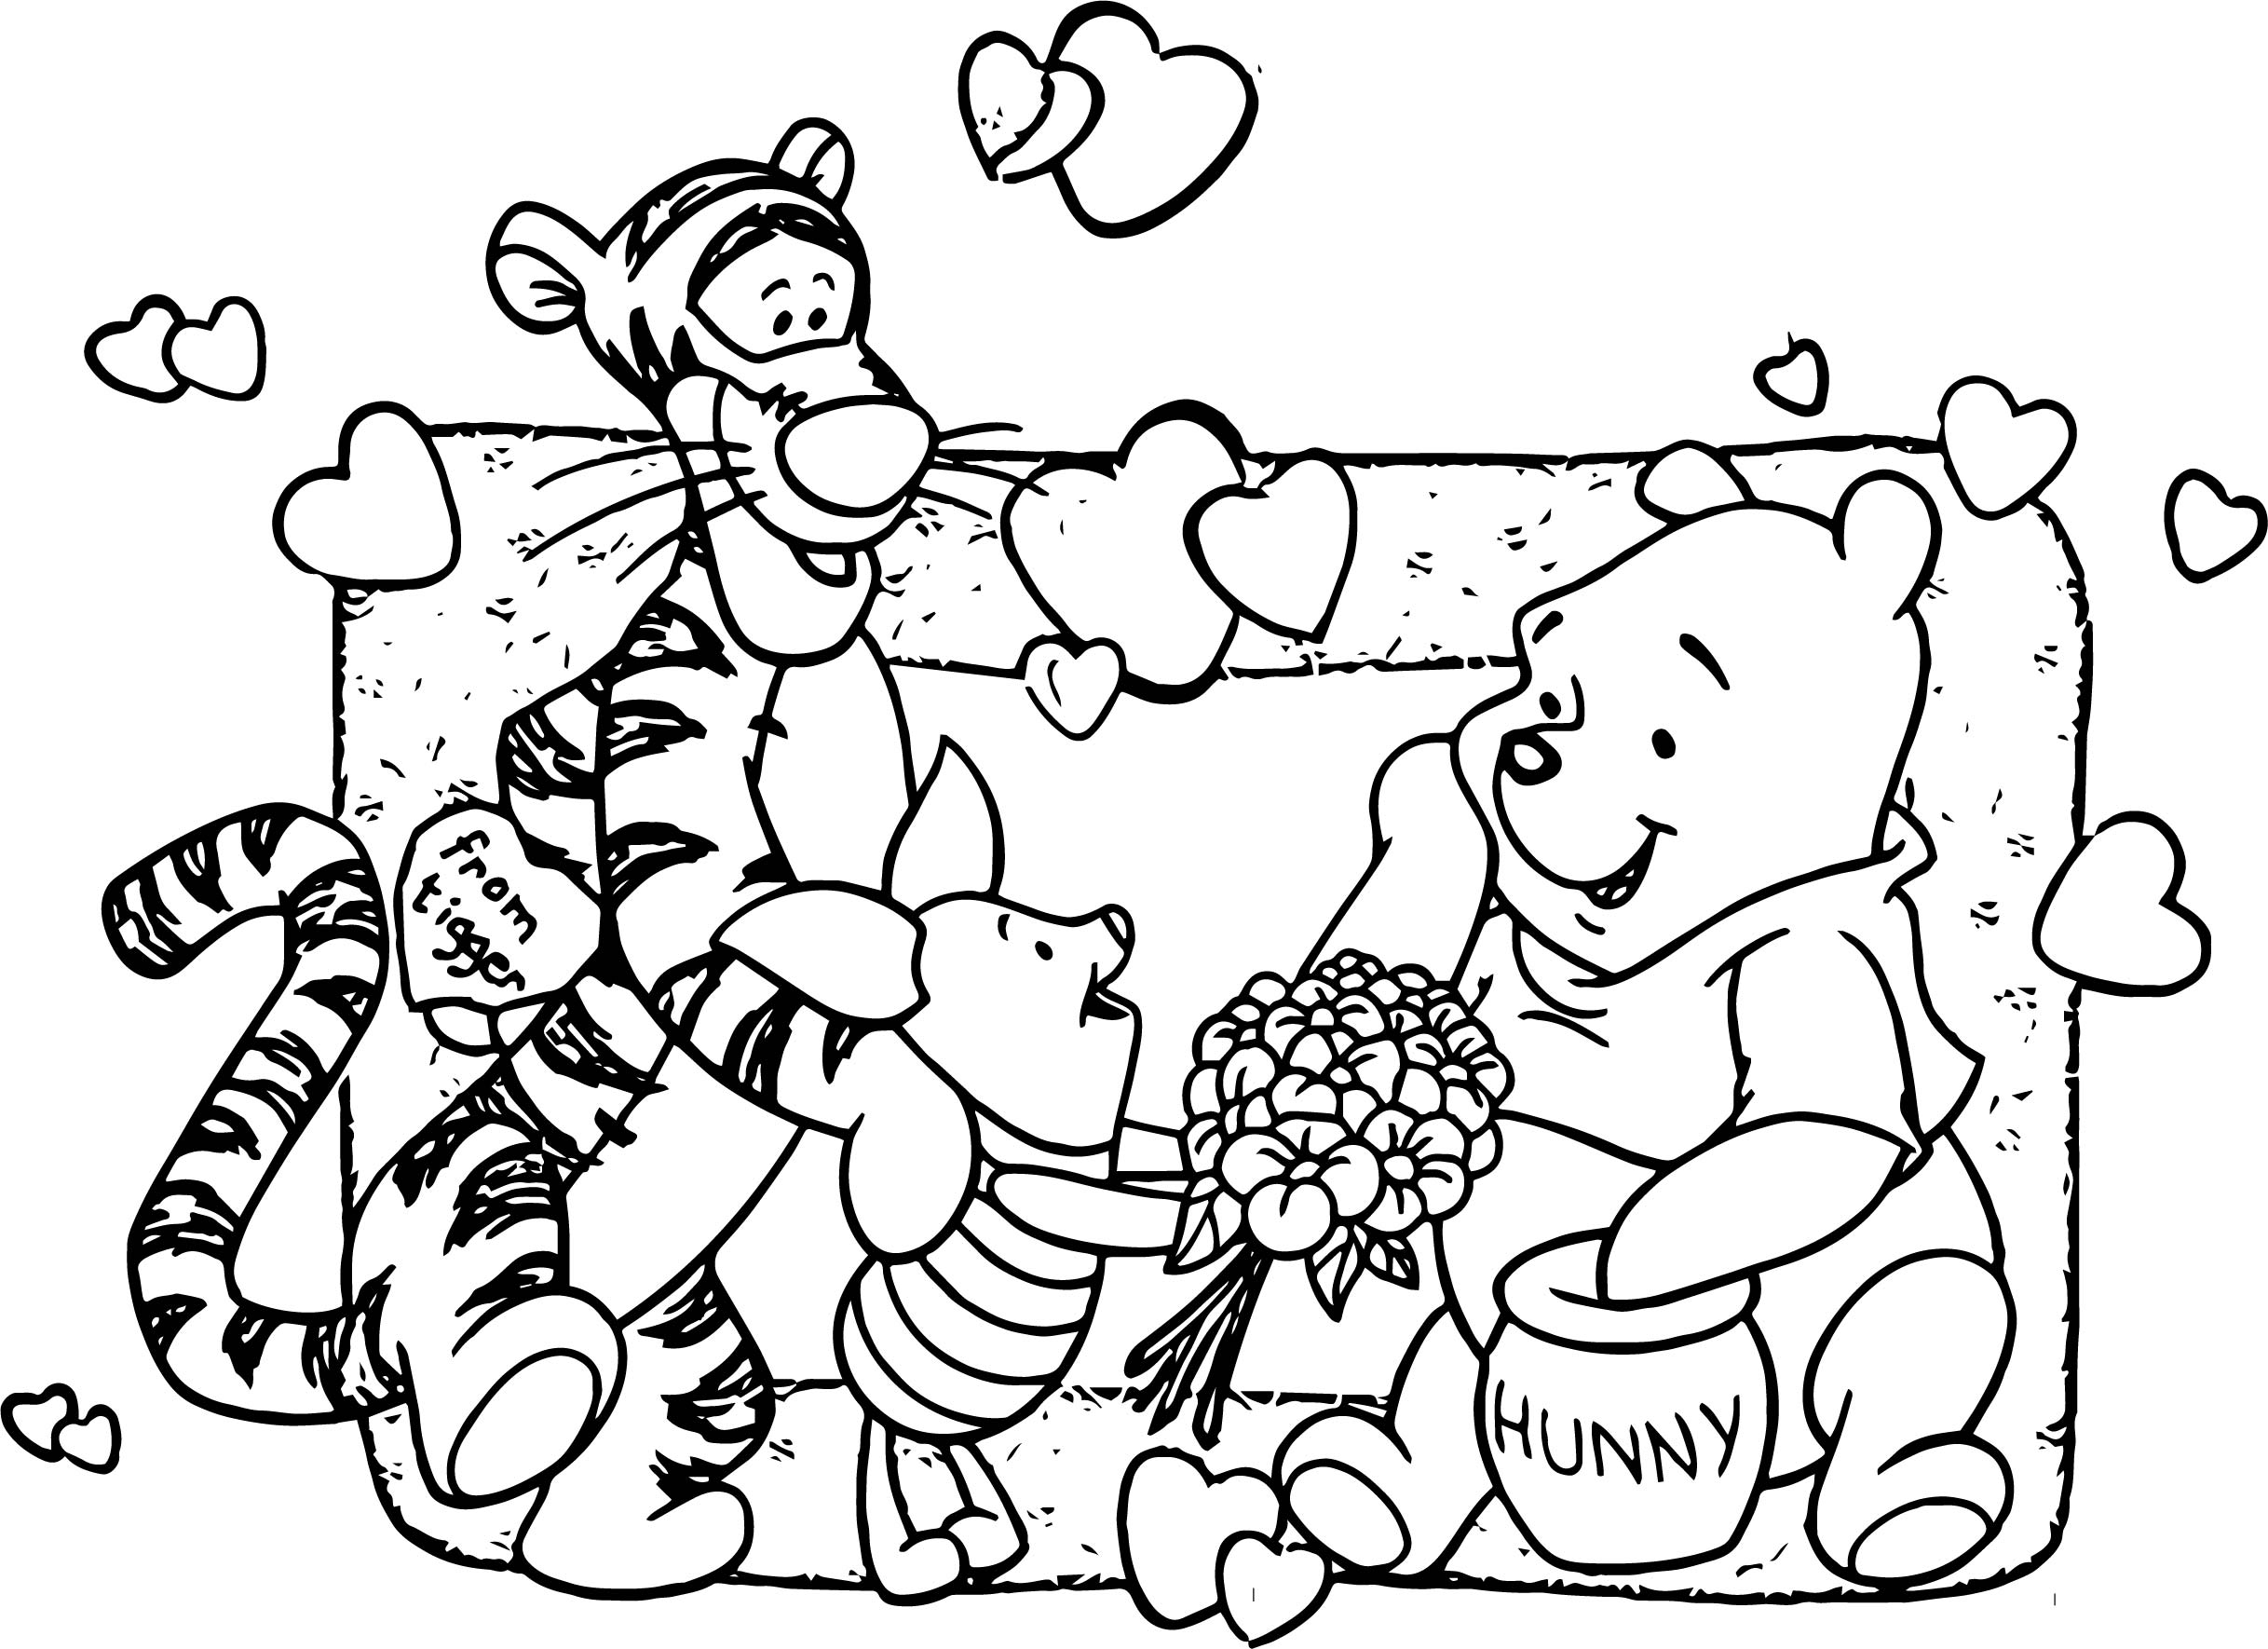 2435x1770 Baby Piglet Winnie The Pooh From Tigger Hunny Coloring Page